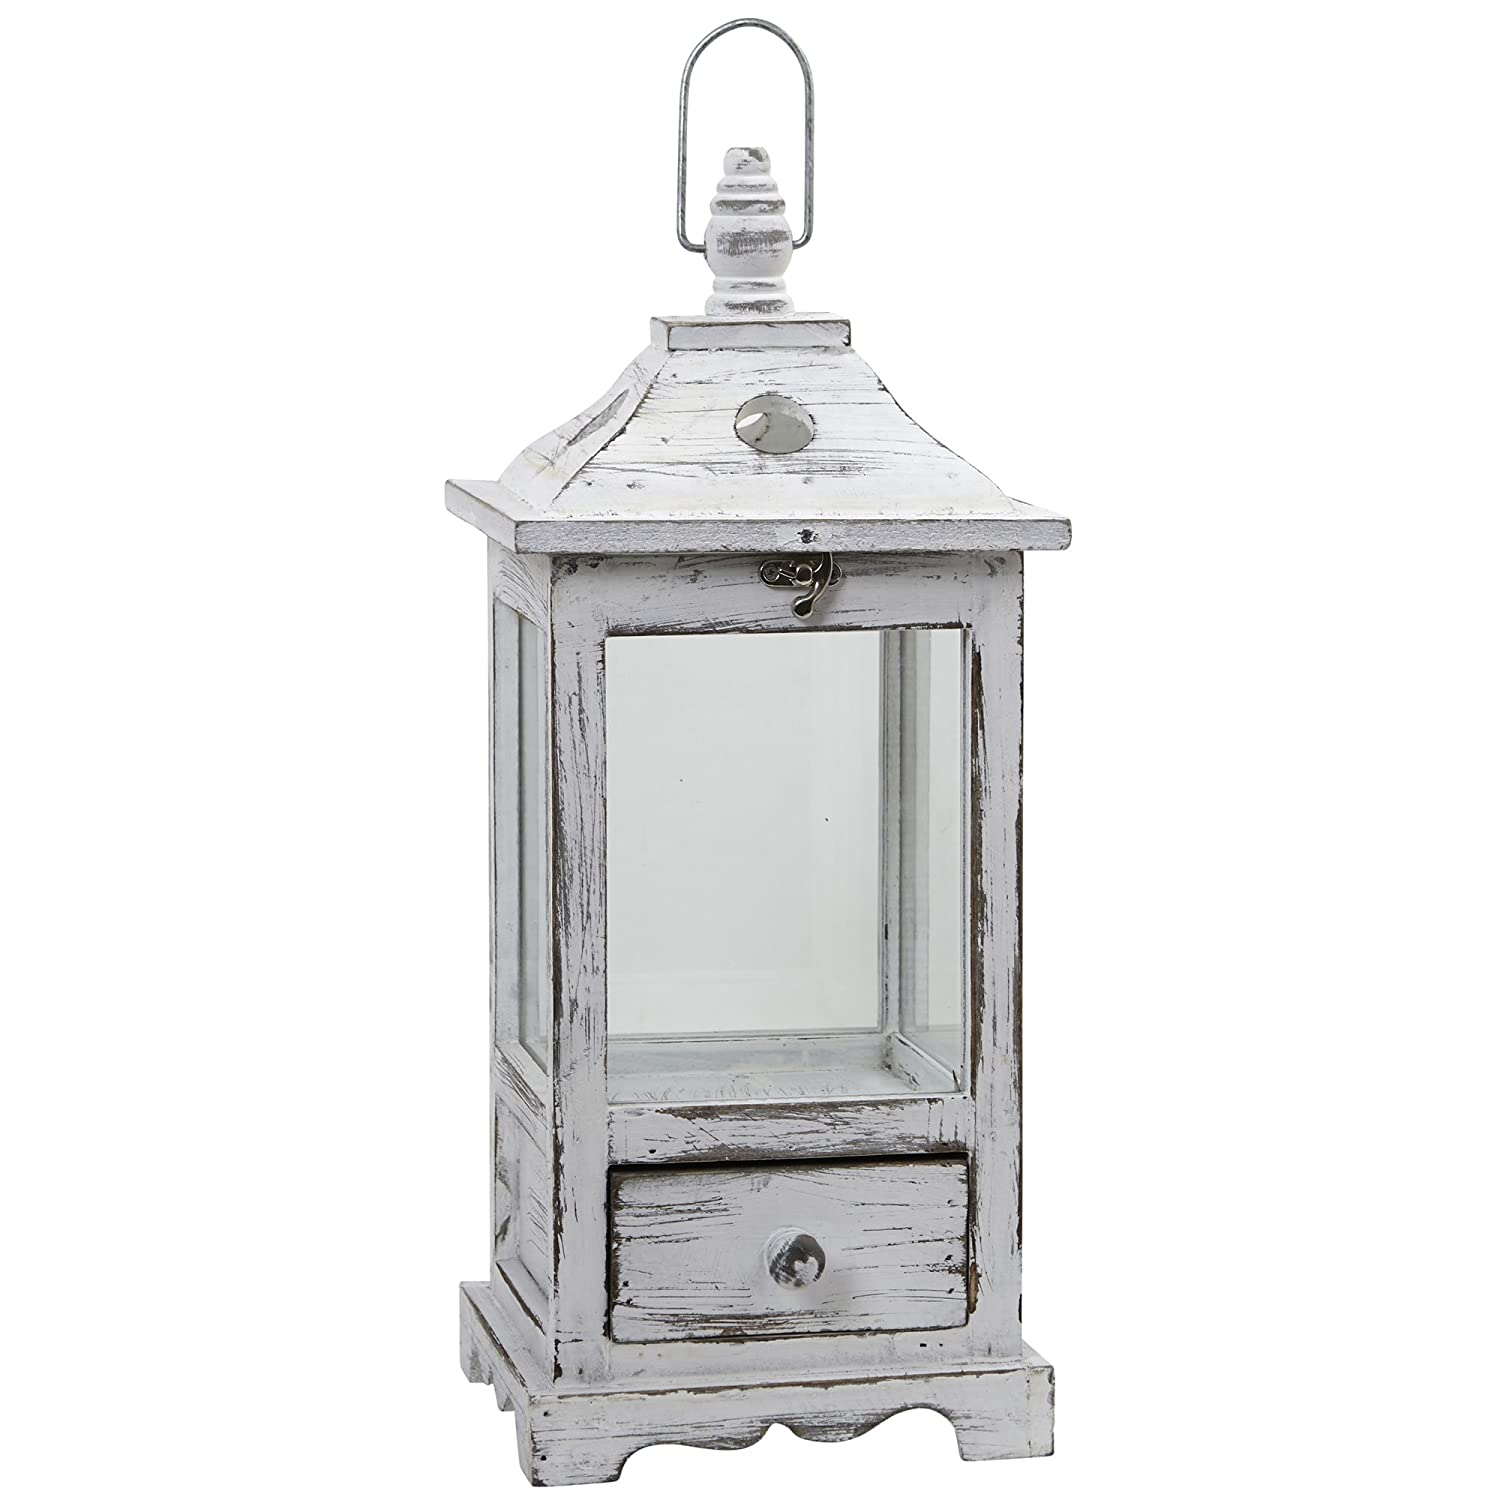 Mango Wooden Lantern with Drawer,White